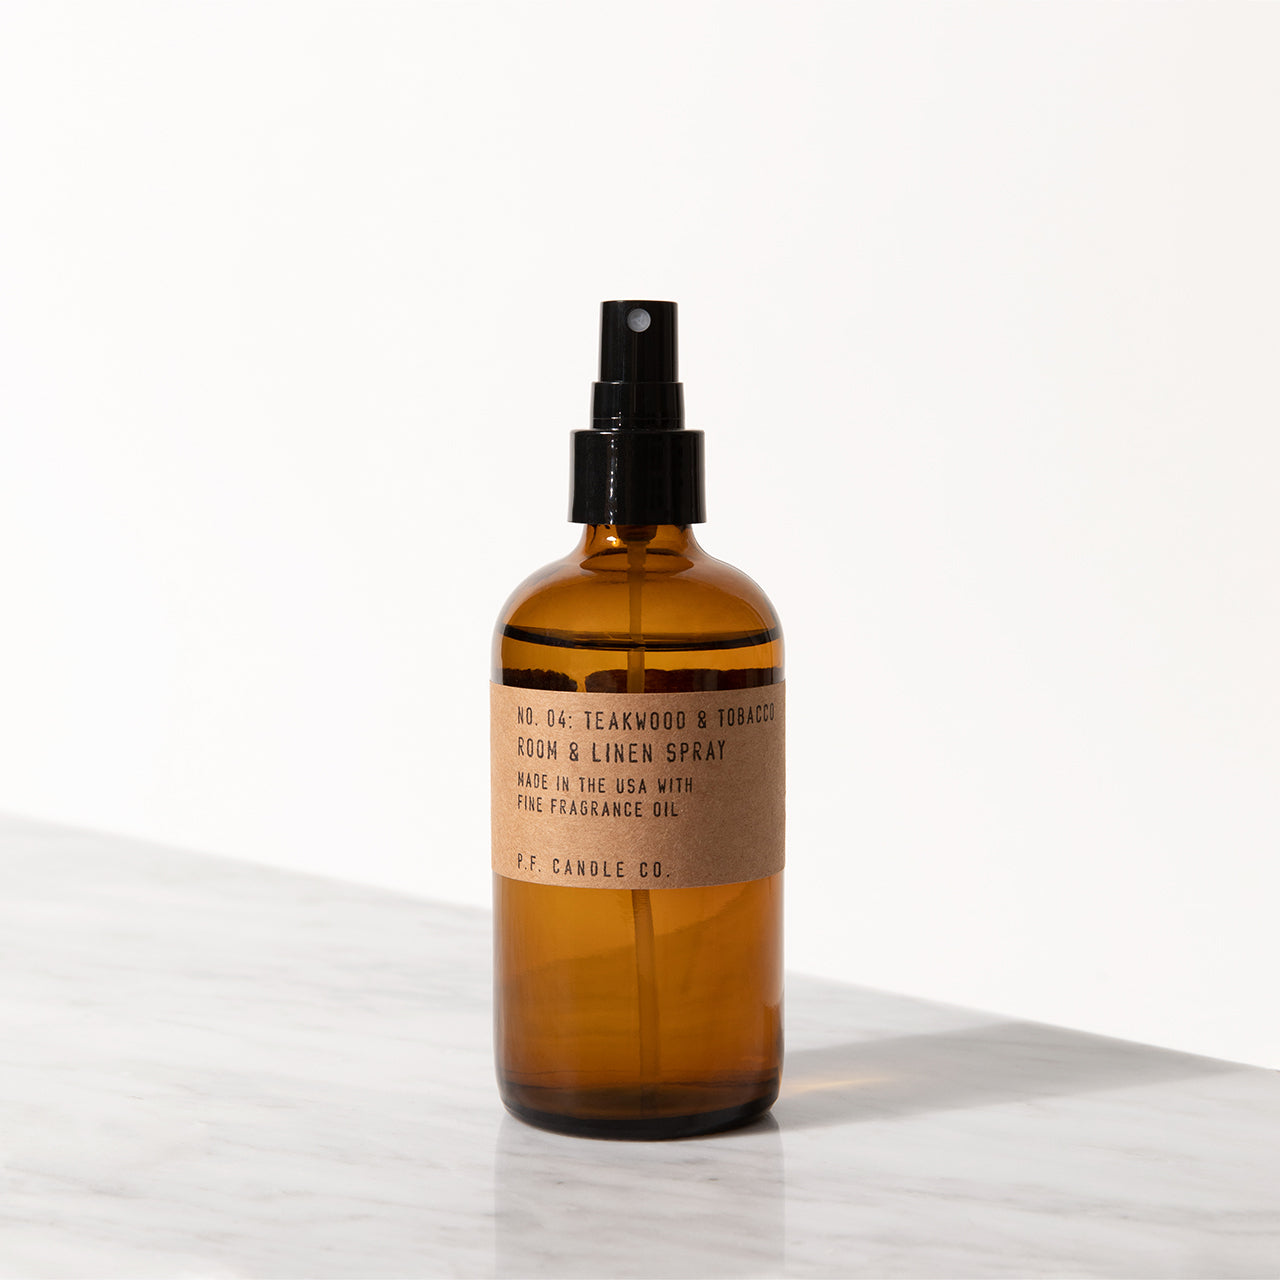 Teakwood Tabacco Room & Linen Spray